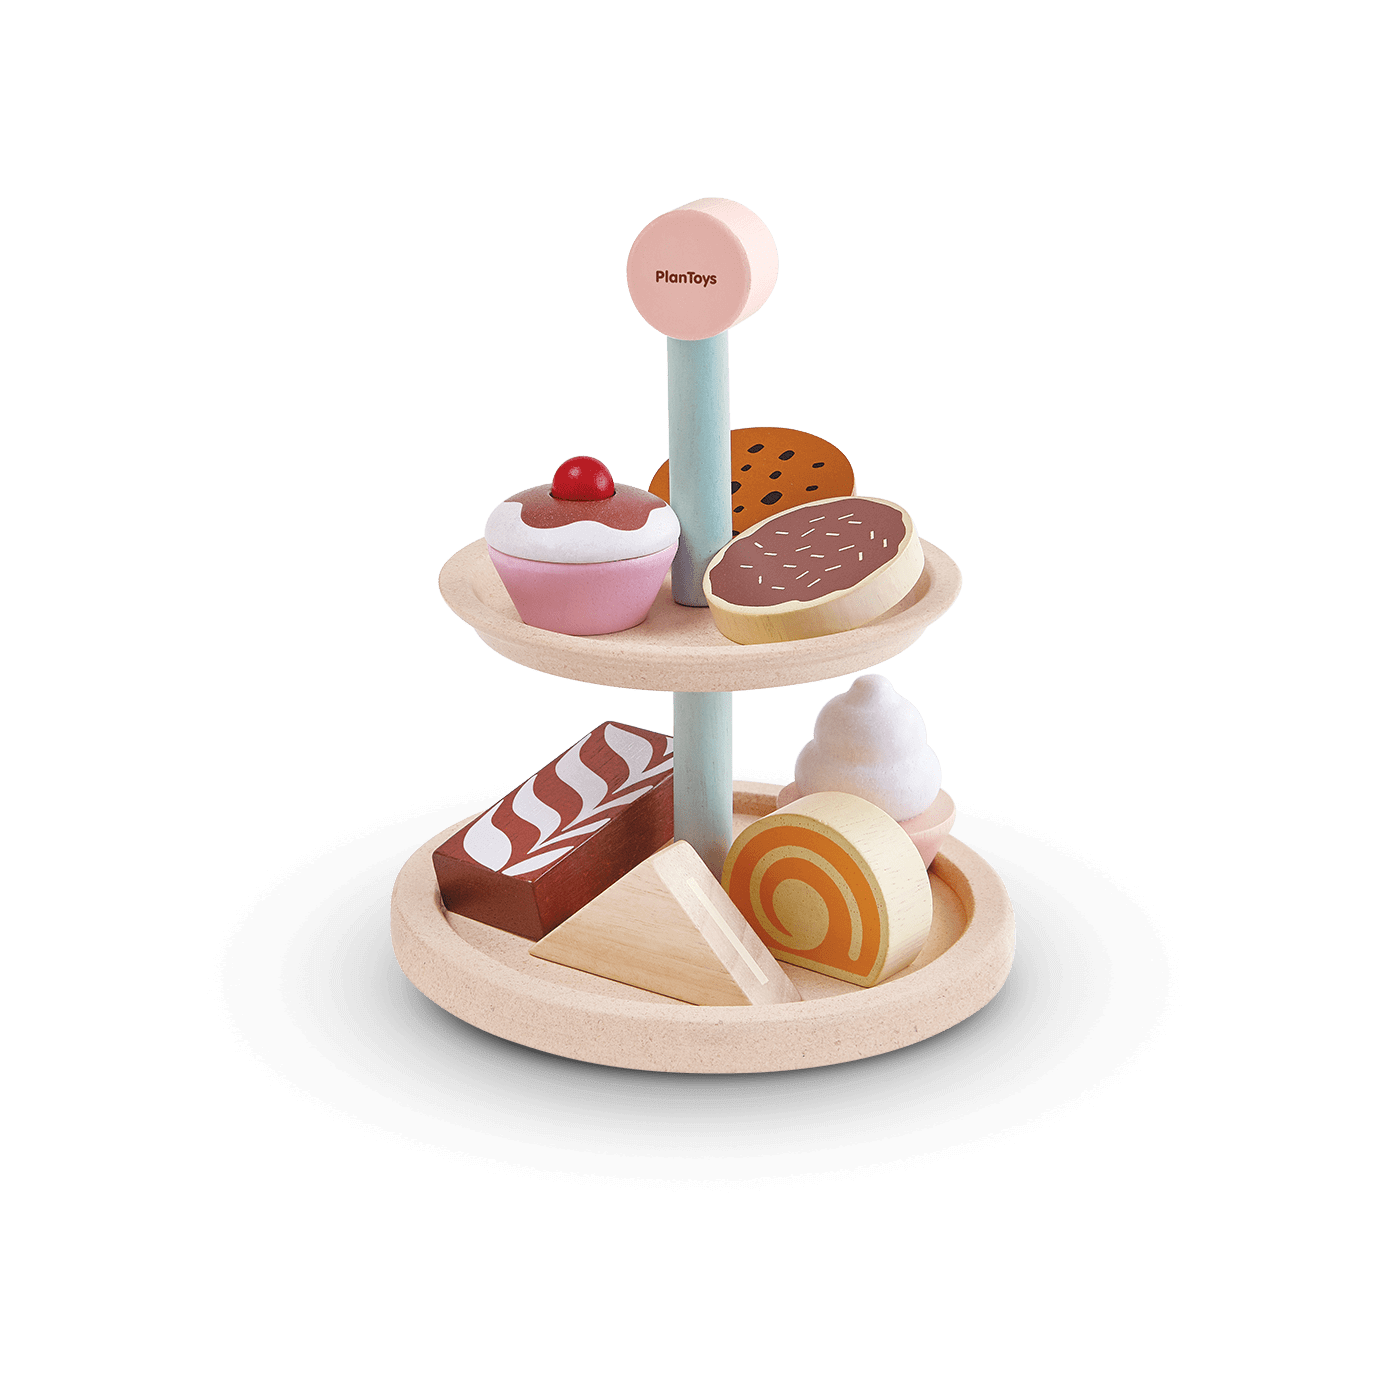 3489_PlanToys_BAKERY_STAND_SET_Pretend_Play_Imagination_Language_and_Communications_Social_Coordination_Emotion_Fine_Motor_2yrs_Wooden_toys_Education_toys_Safety_Toys_Non-toxic_0.png